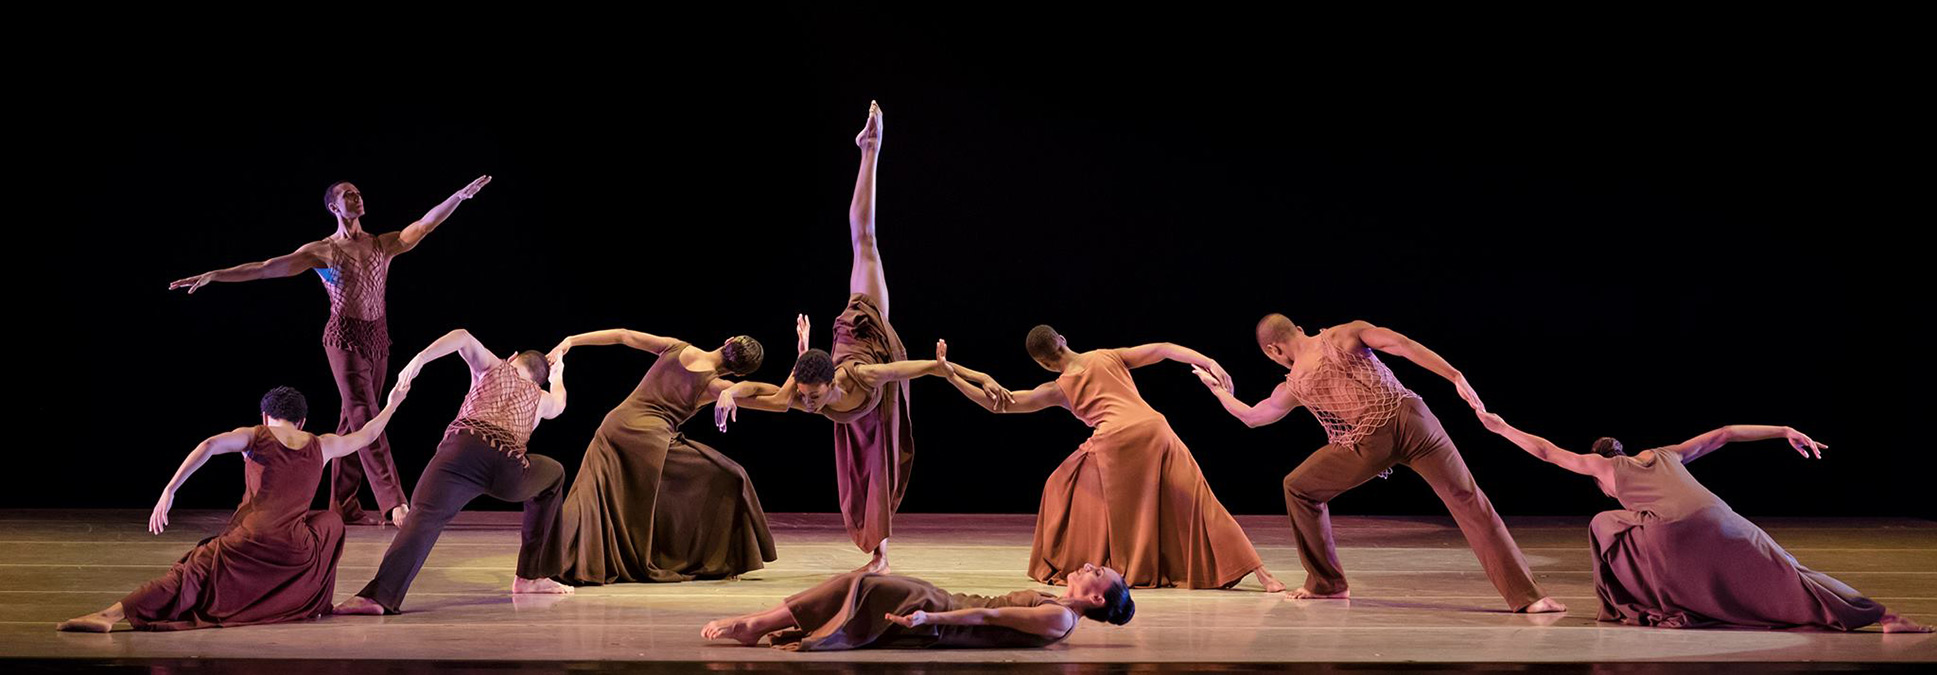 ALVIN AILEY AT THE MARCUS PERFORMING ARTS CENTER IN MILWAUKEE